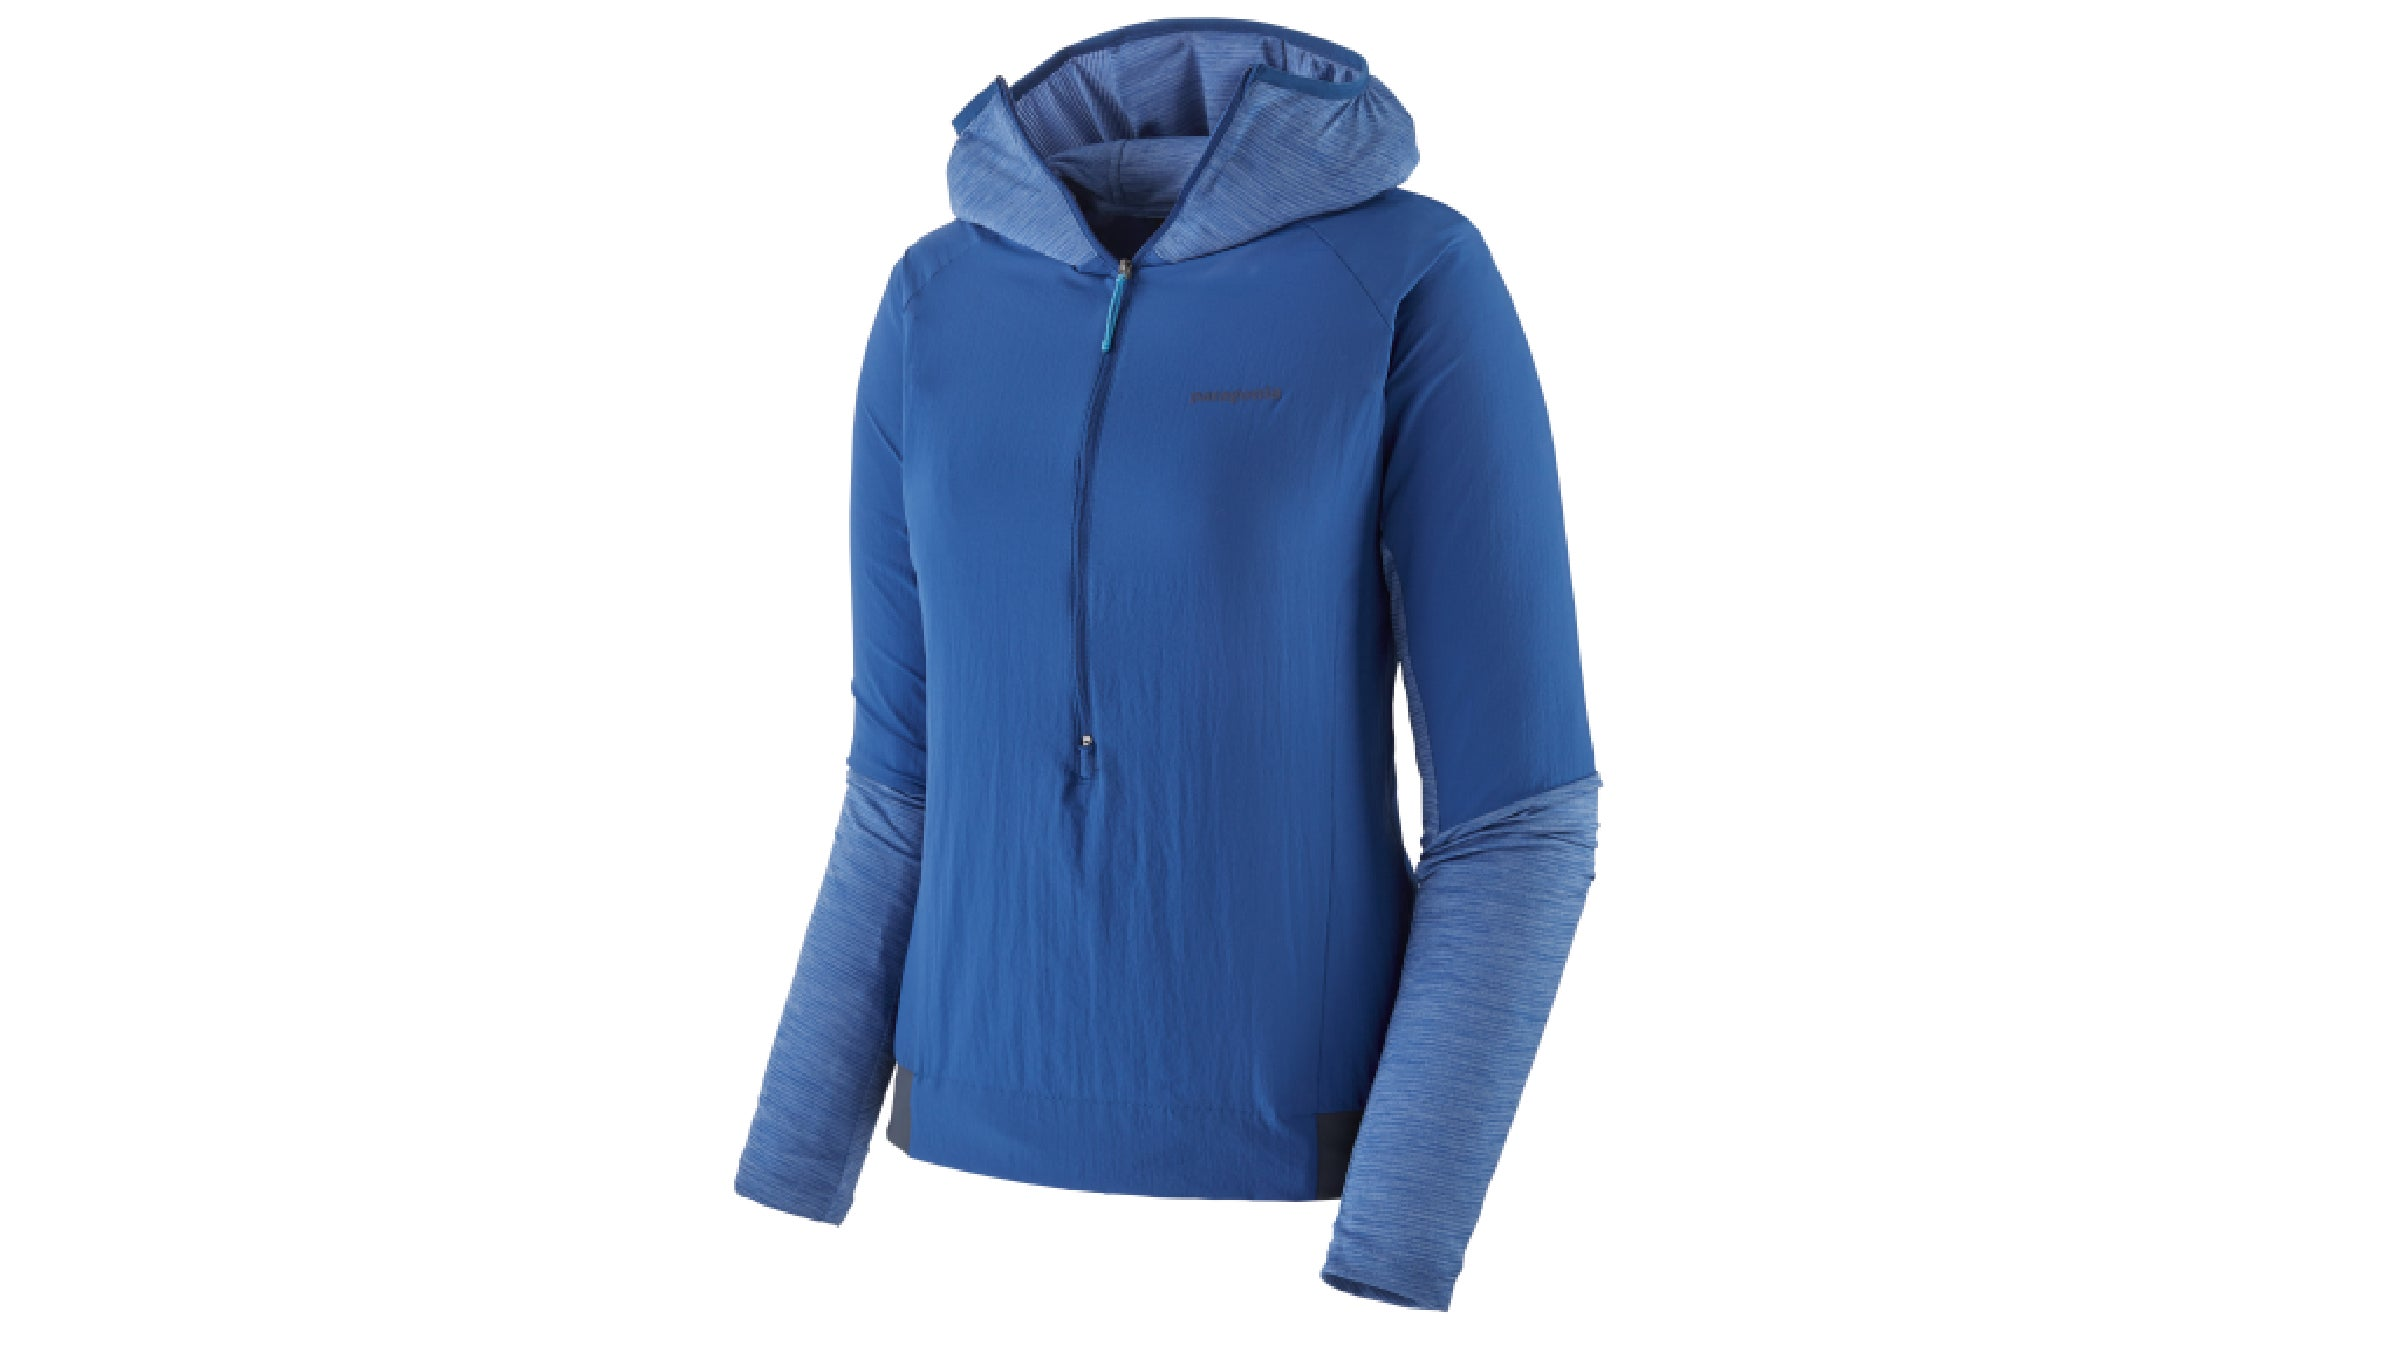 Women's Patagonia airshed pro pullover